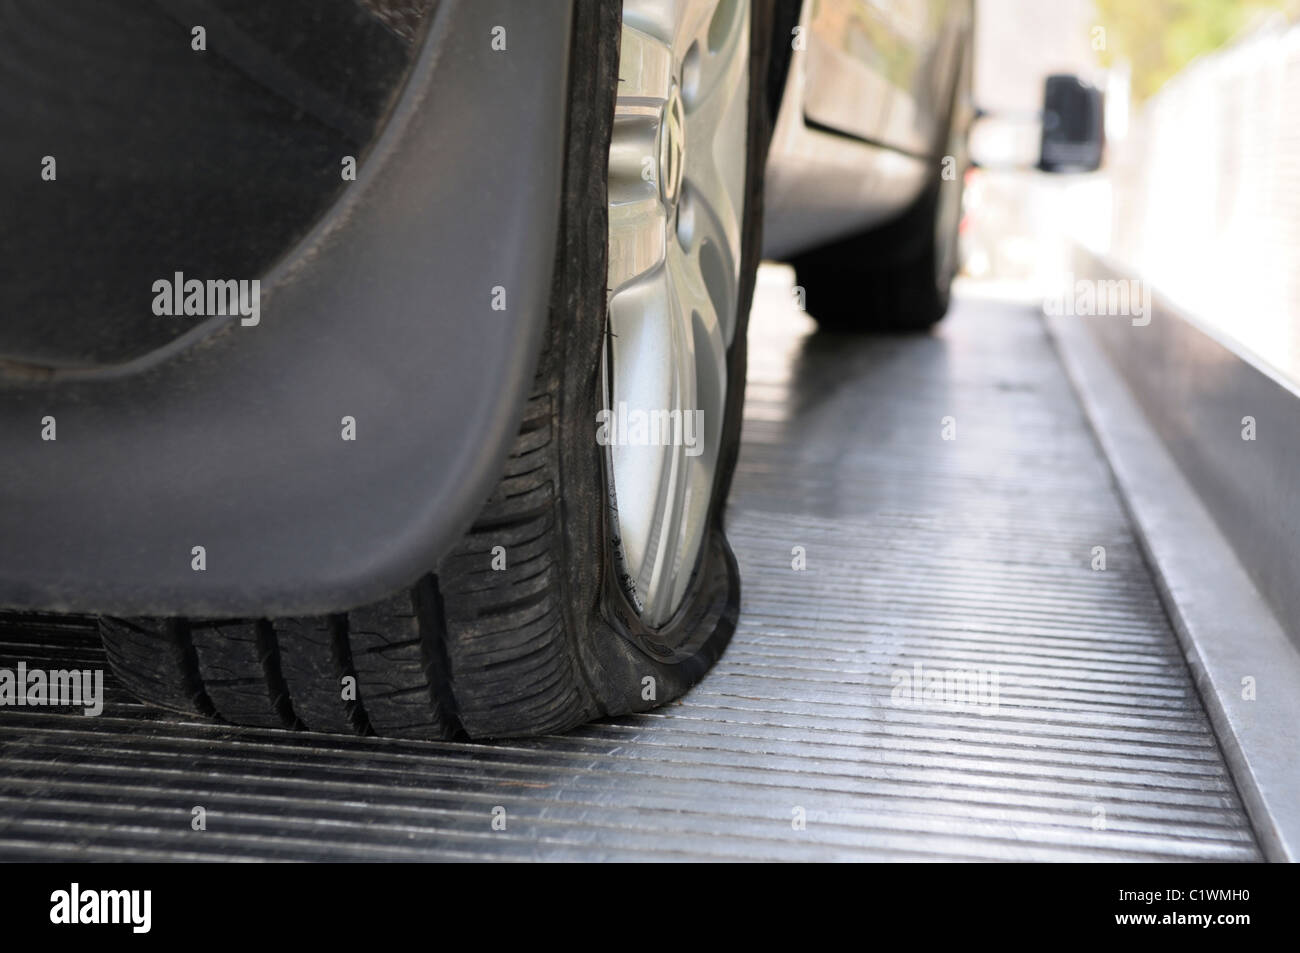 Flat tire - Stock Image